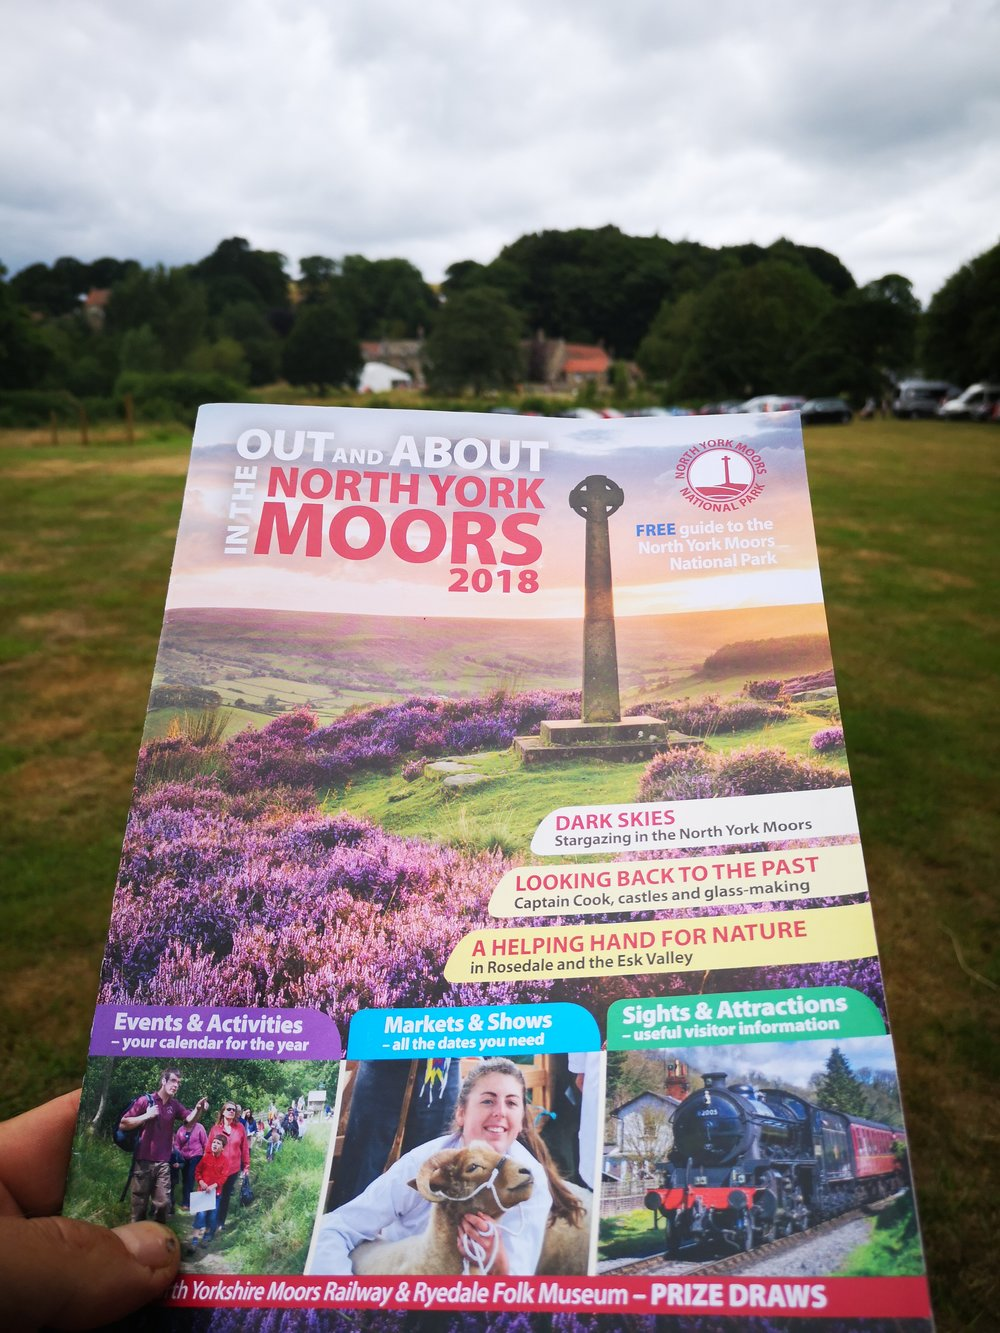 Photographer for the North York Moors 2017-18 - Supplied images for the North York Moors National Park magazine 2018 with front cover feature of the Millennium cross surrounded by heather at sunset.